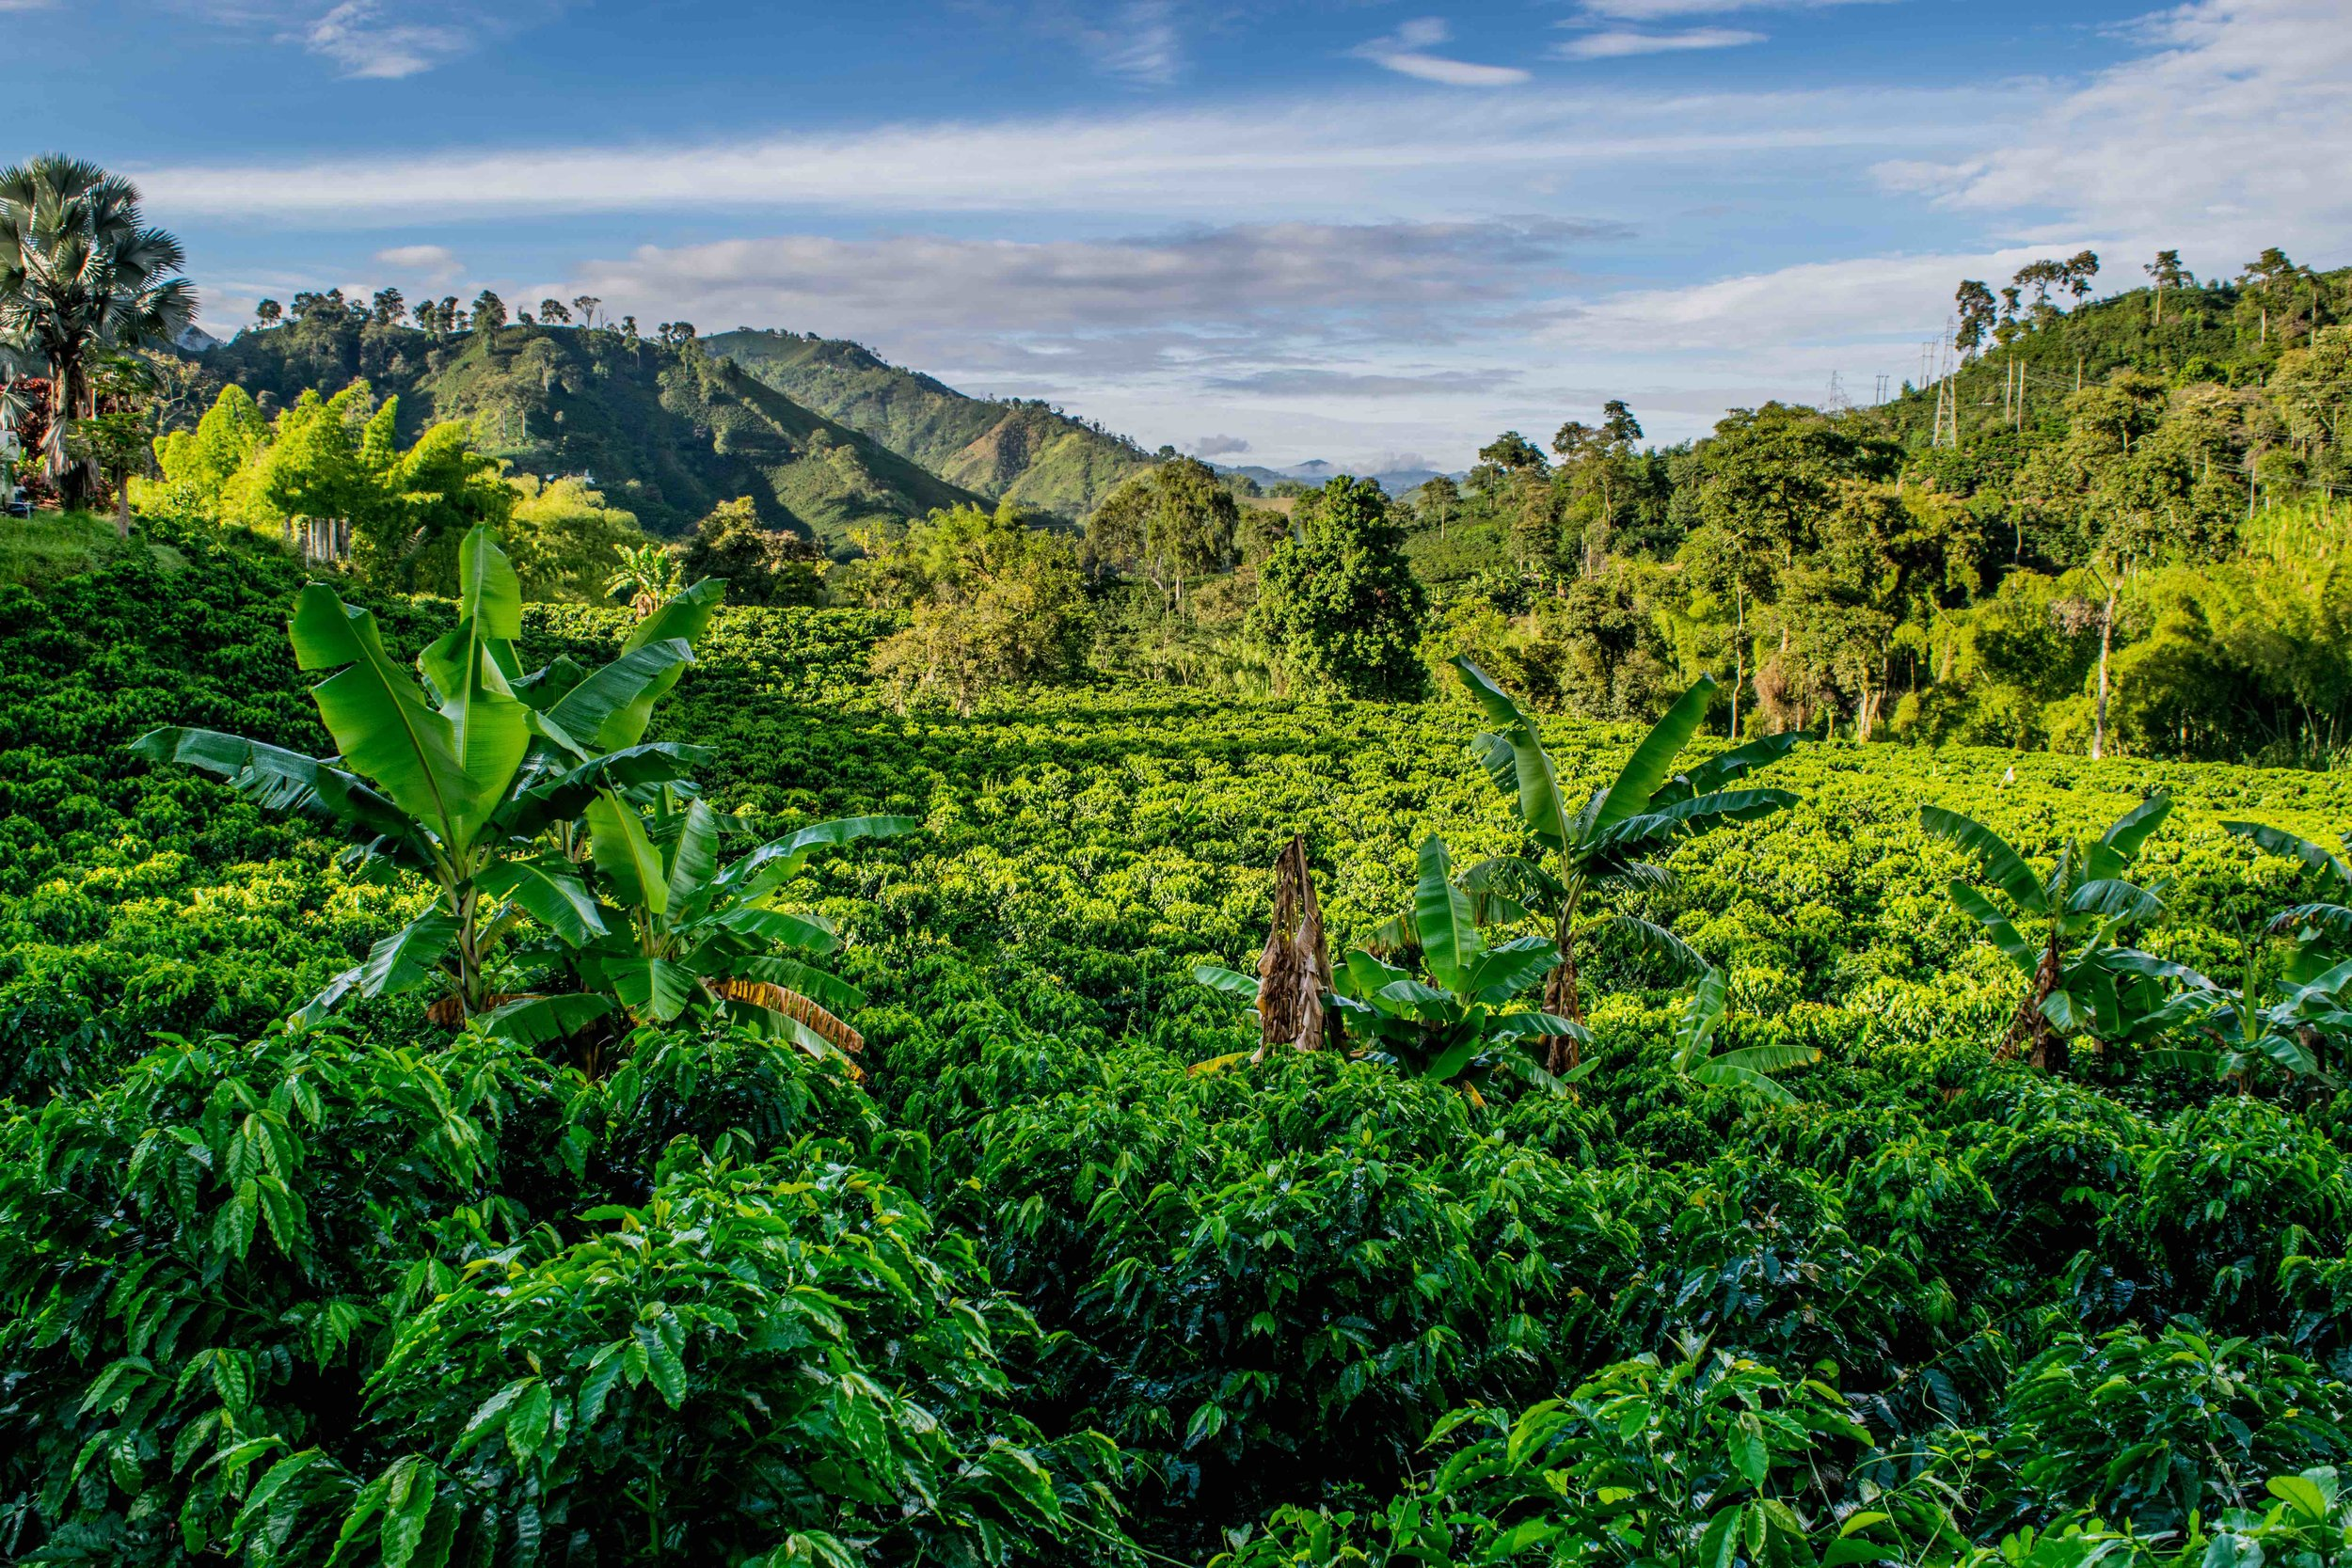 The country's coffee region provides not only great beans, but stunning scenery. Photo courtesy of Galavanta